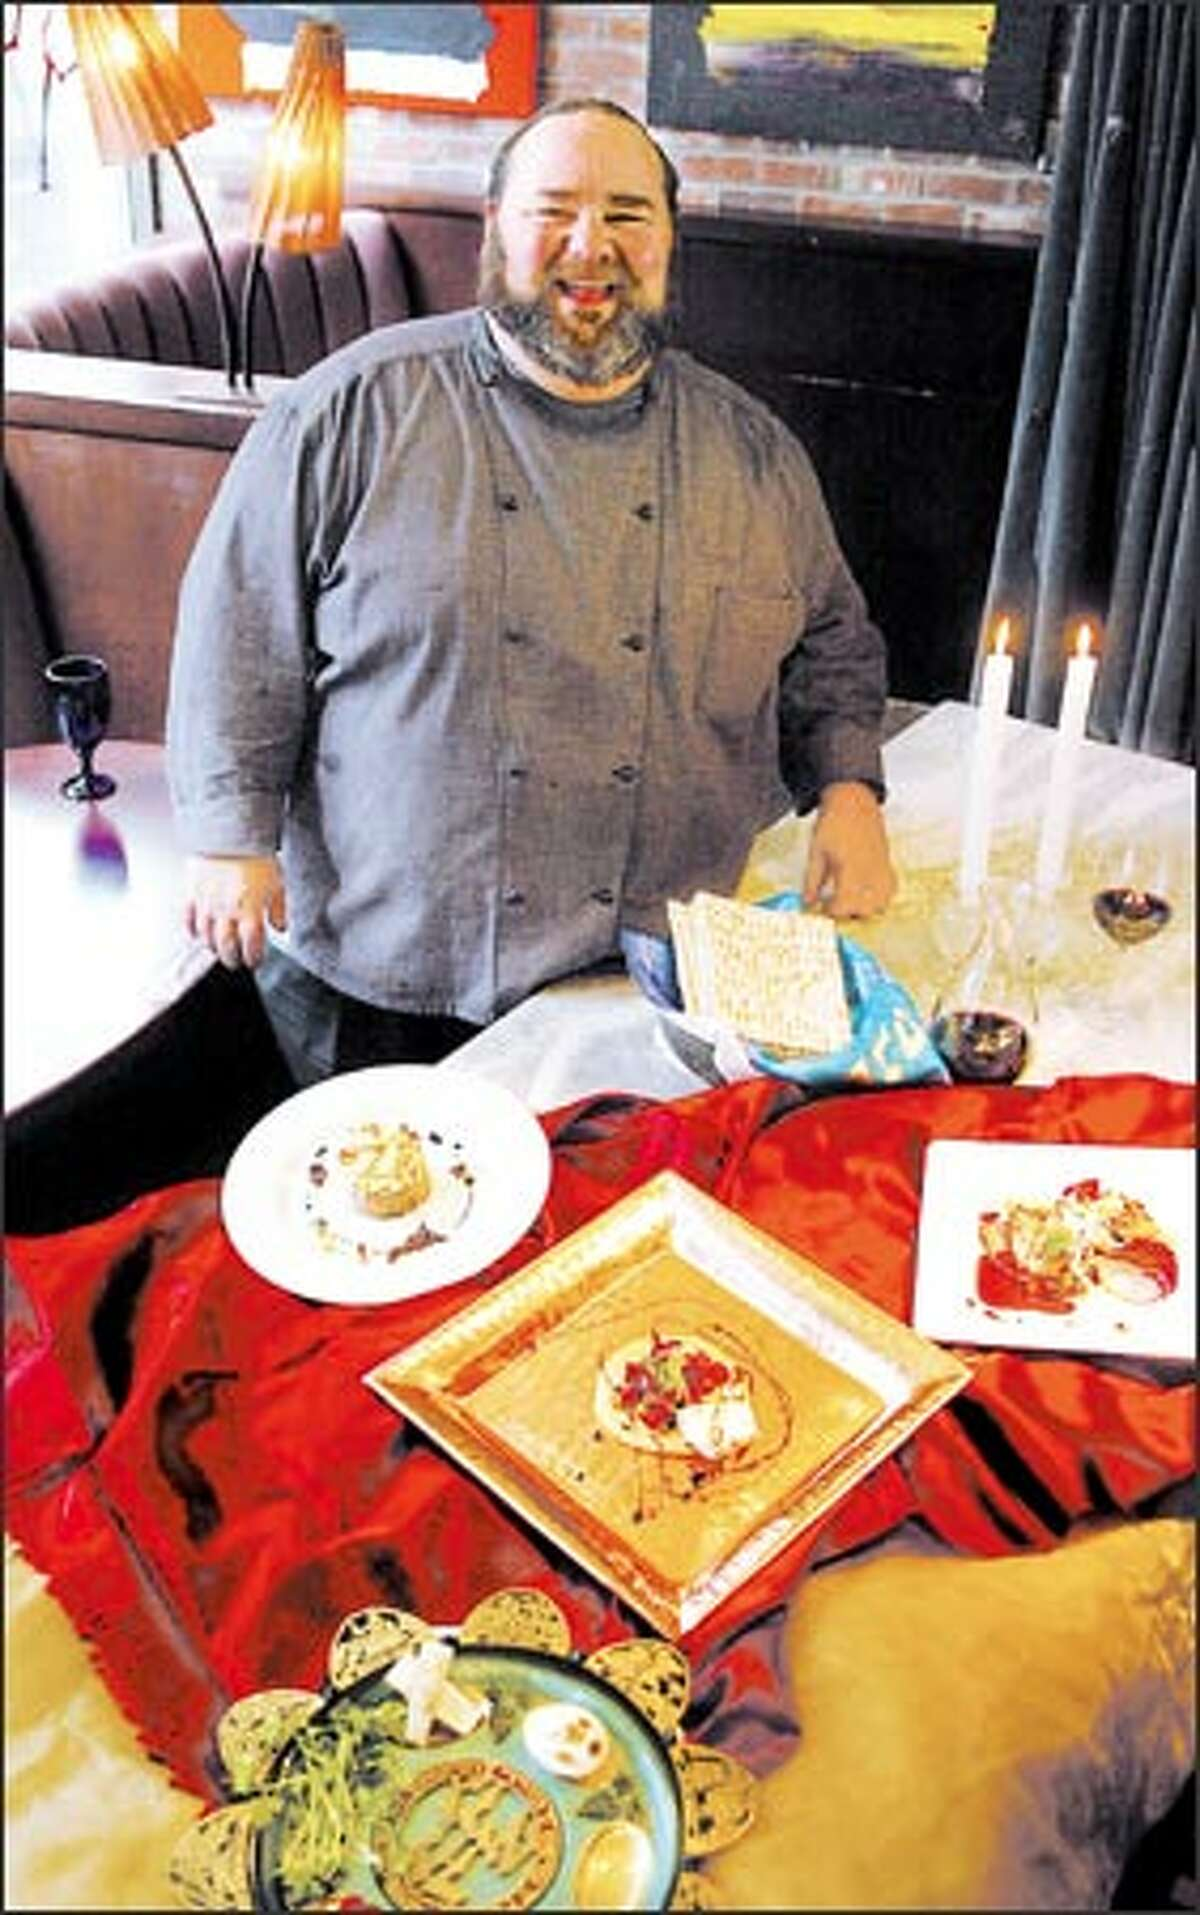 """Chef Jan Birnbaum is injecting his trademark """"Big Dawg"""" sizzle into the Seder."""